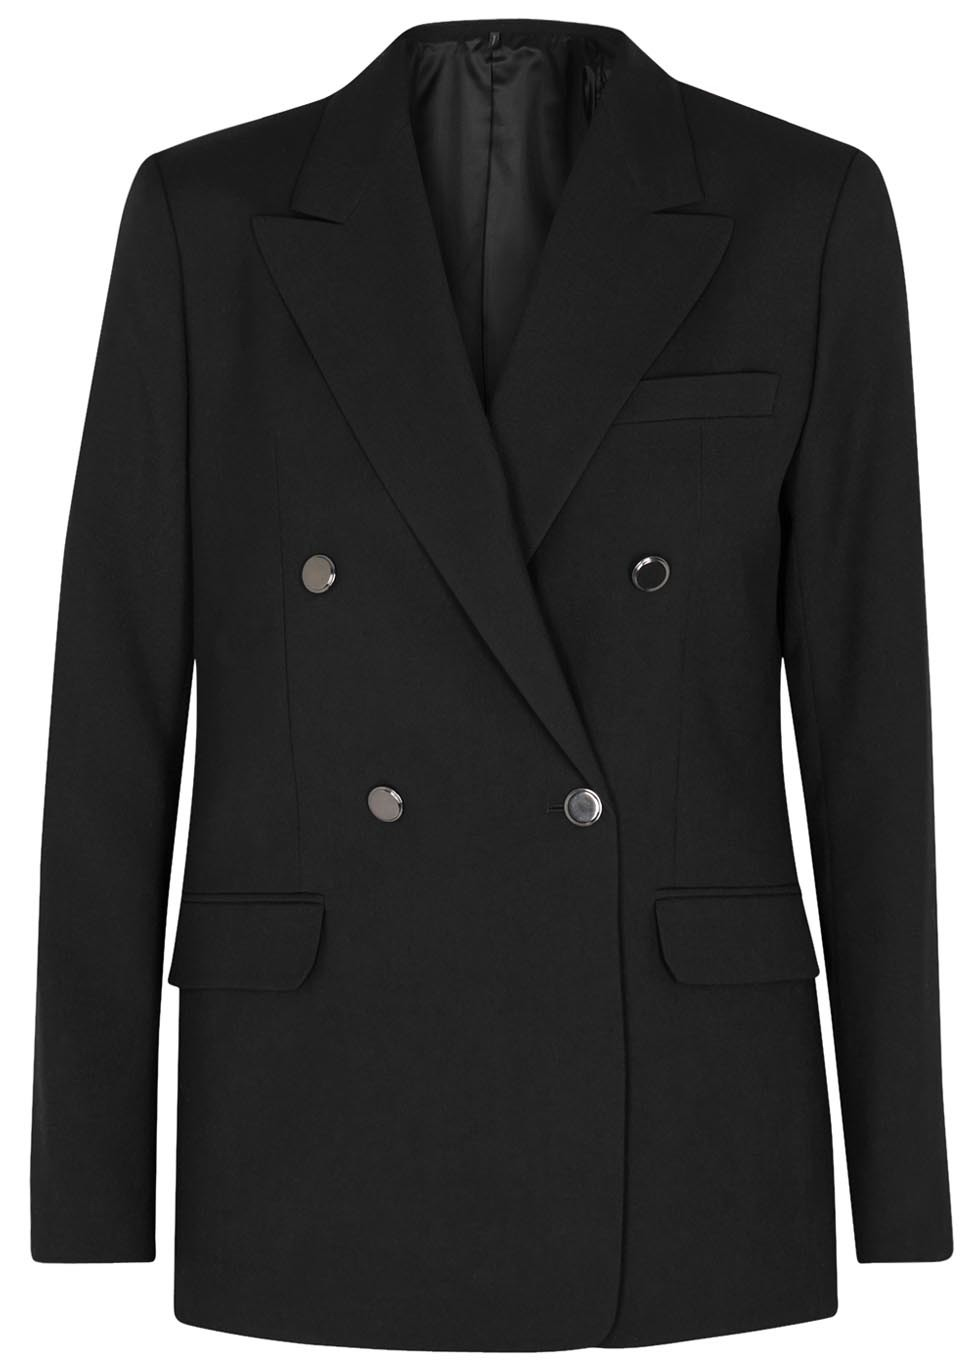 Black Double Breasted Wool Jacket - pattern: plain; style: double breasted blazer; length: below the bottom; collar: standard lapel/rever collar; predominant colour: black; occasions: work; fit: tailored/fitted; fibres: wool - 100%; sleeve length: long sleeve; sleeve style: standard; collar break: medium; pattern type: fabric; texture group: woven light midweight; season: s/s 2016; wardrobe: investment